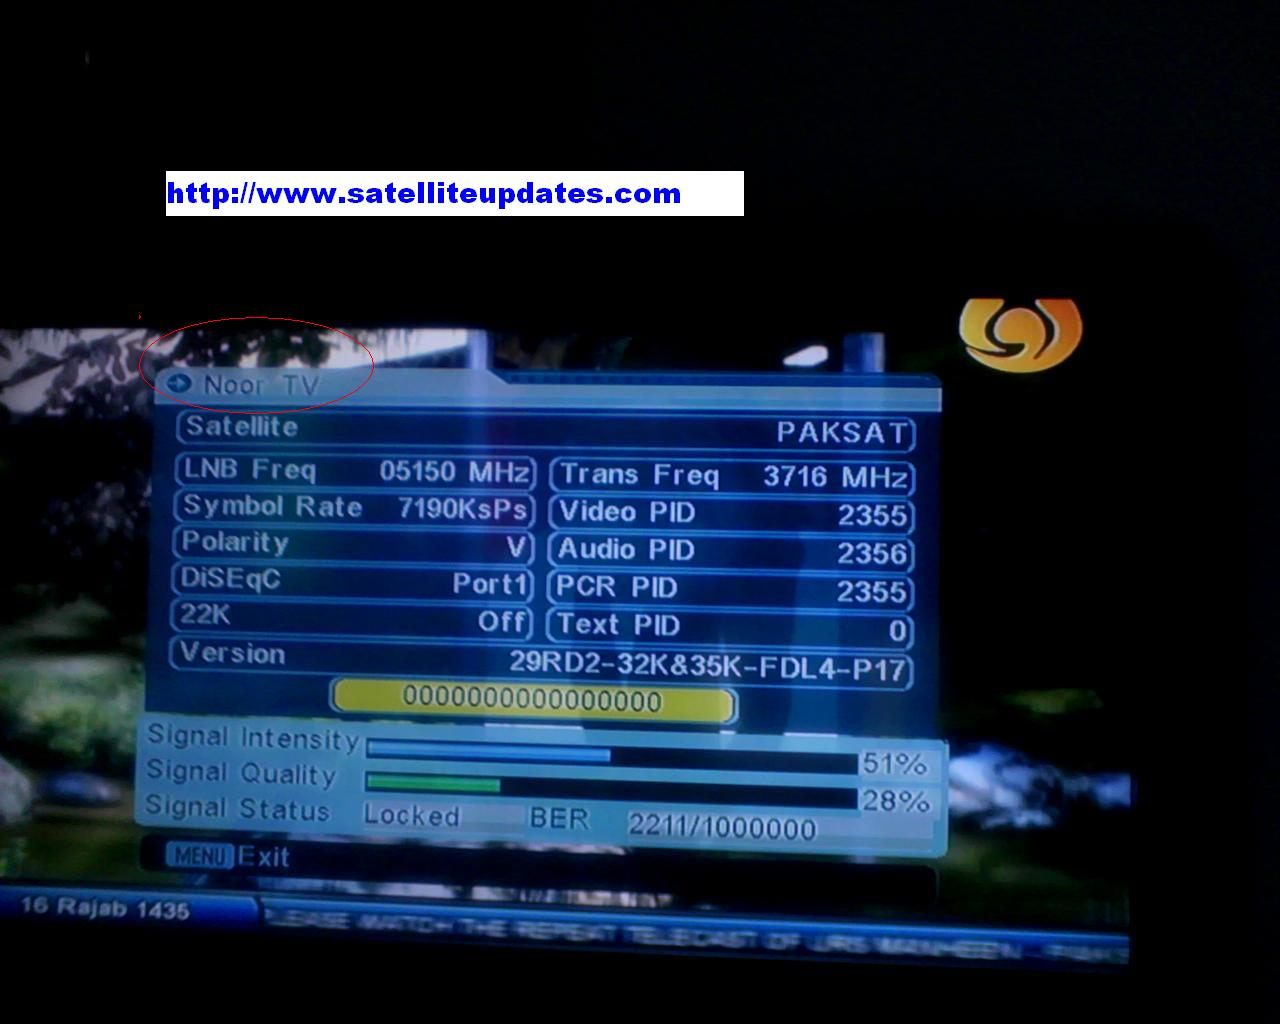 Frequency Tv New Channel Noor Tv Started On Paksat 38east Satellites Updates